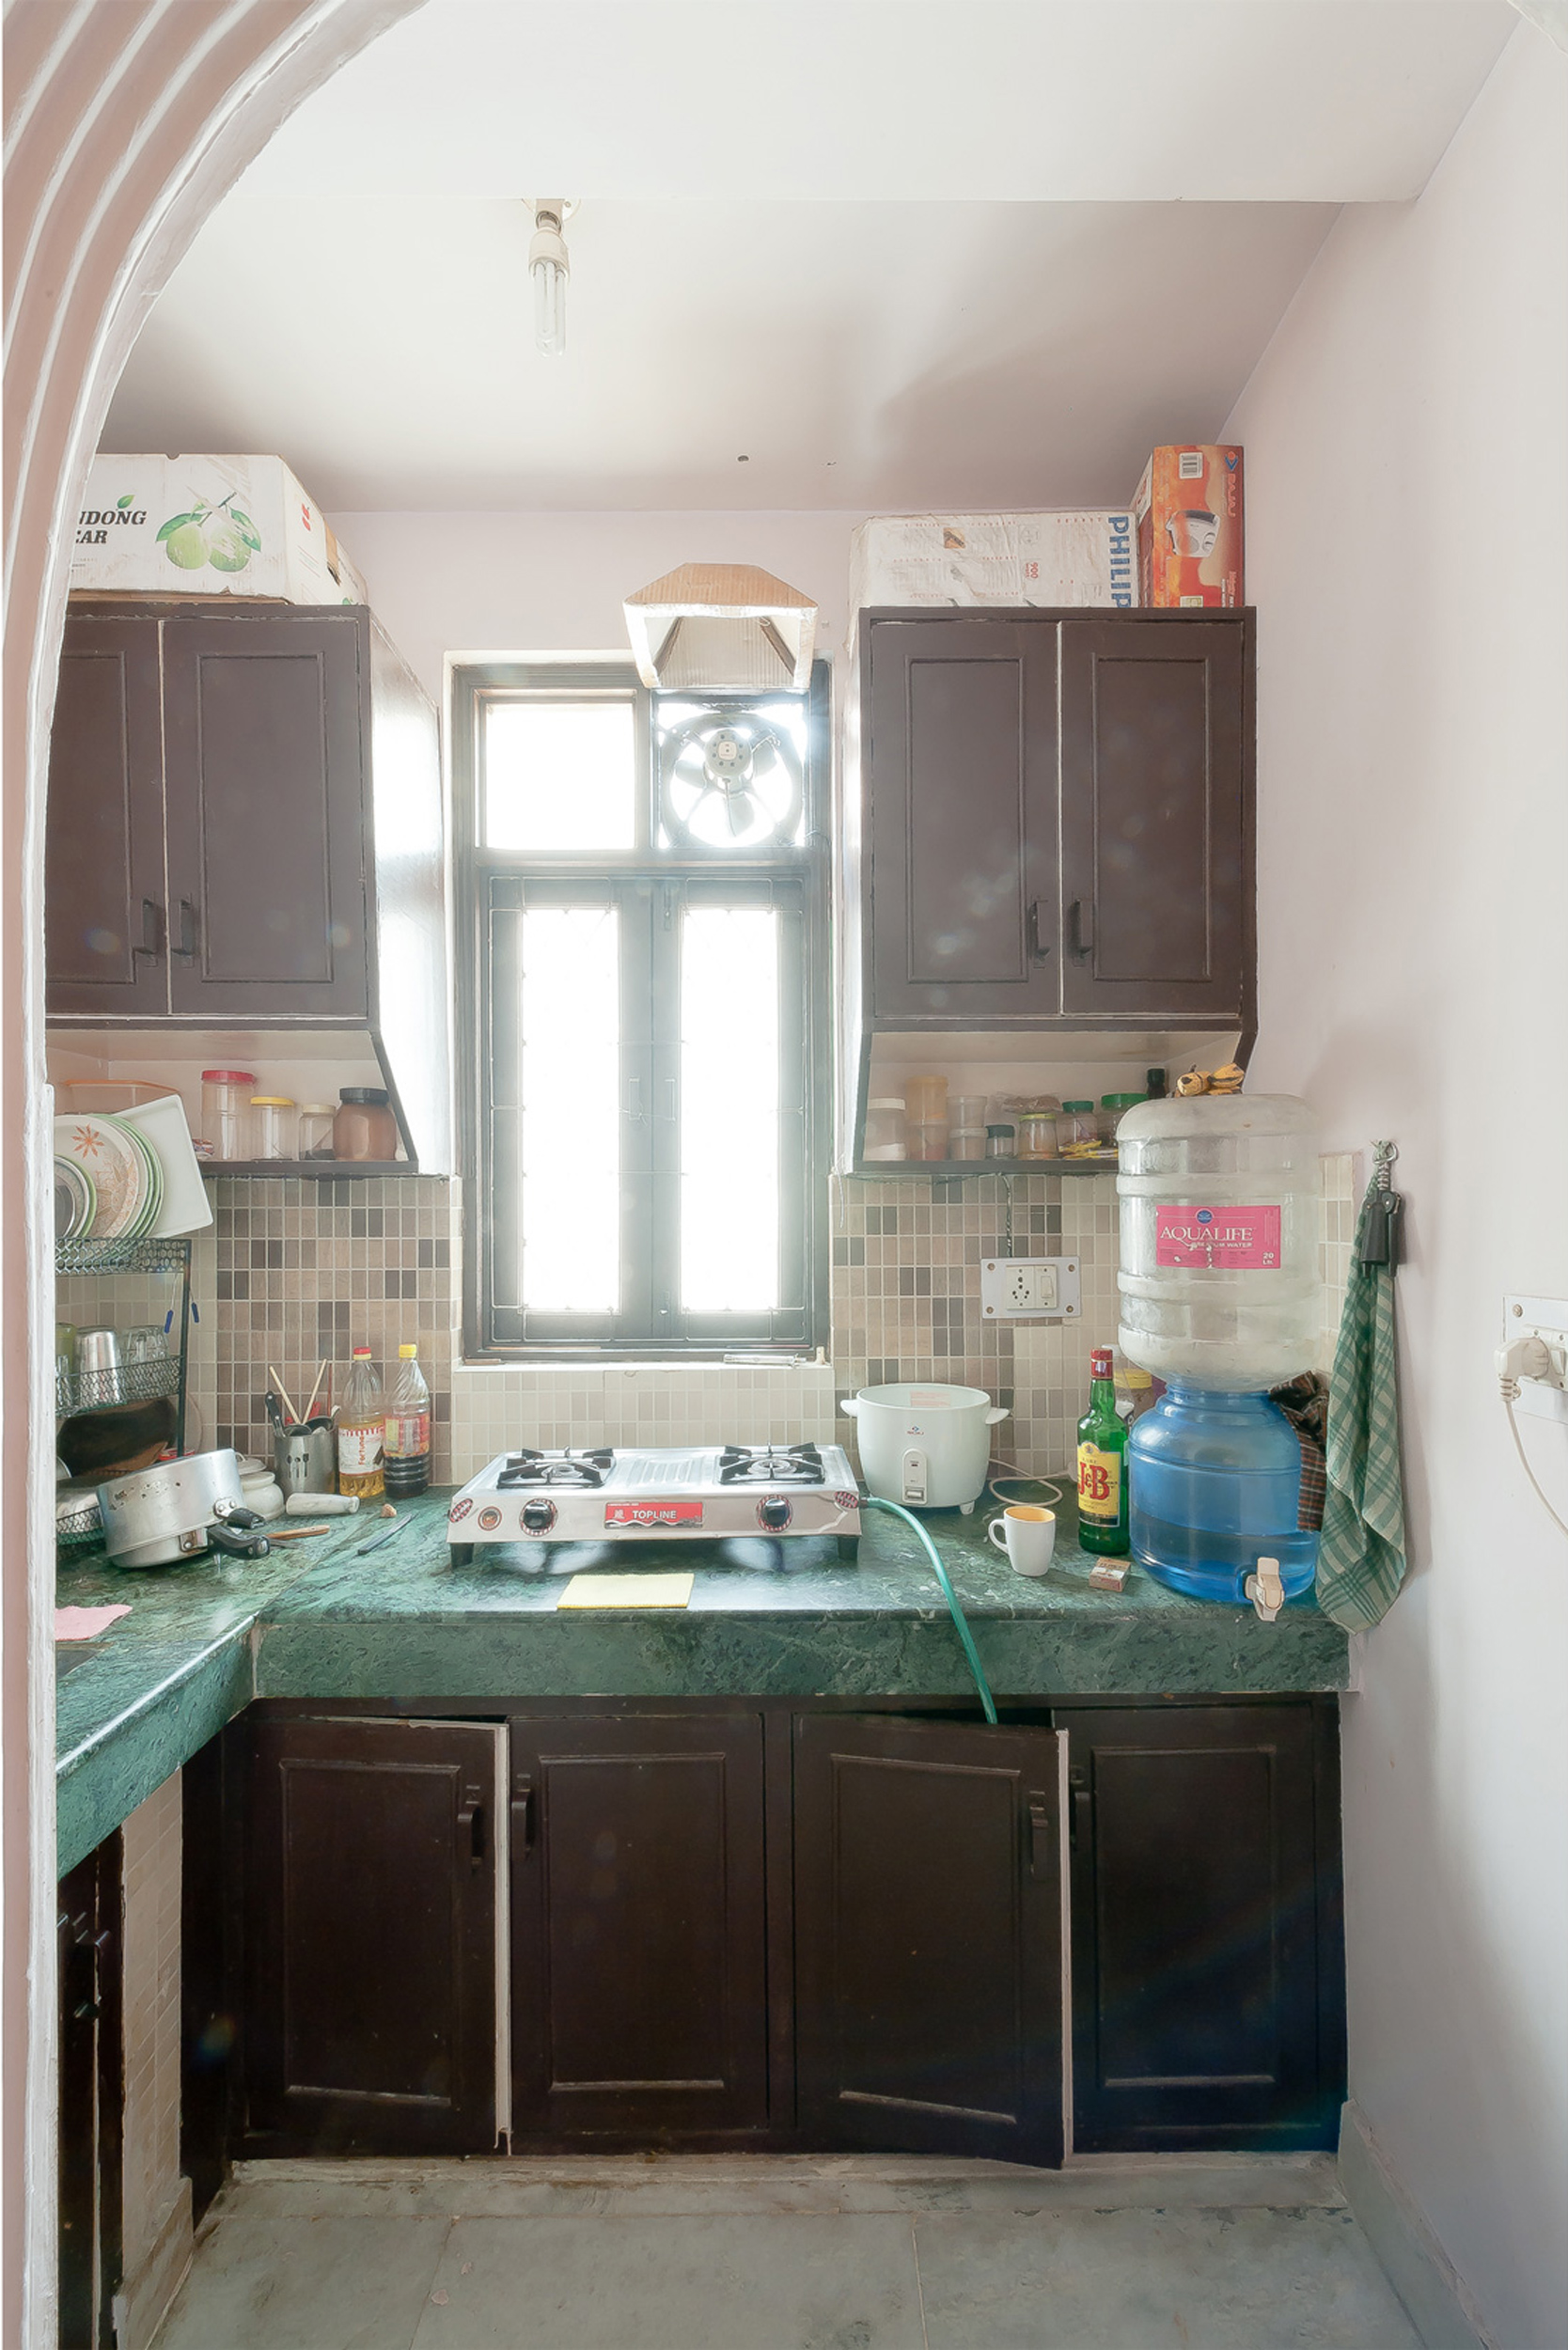 THE INDIAN MIDDLECLASS KITCHEN